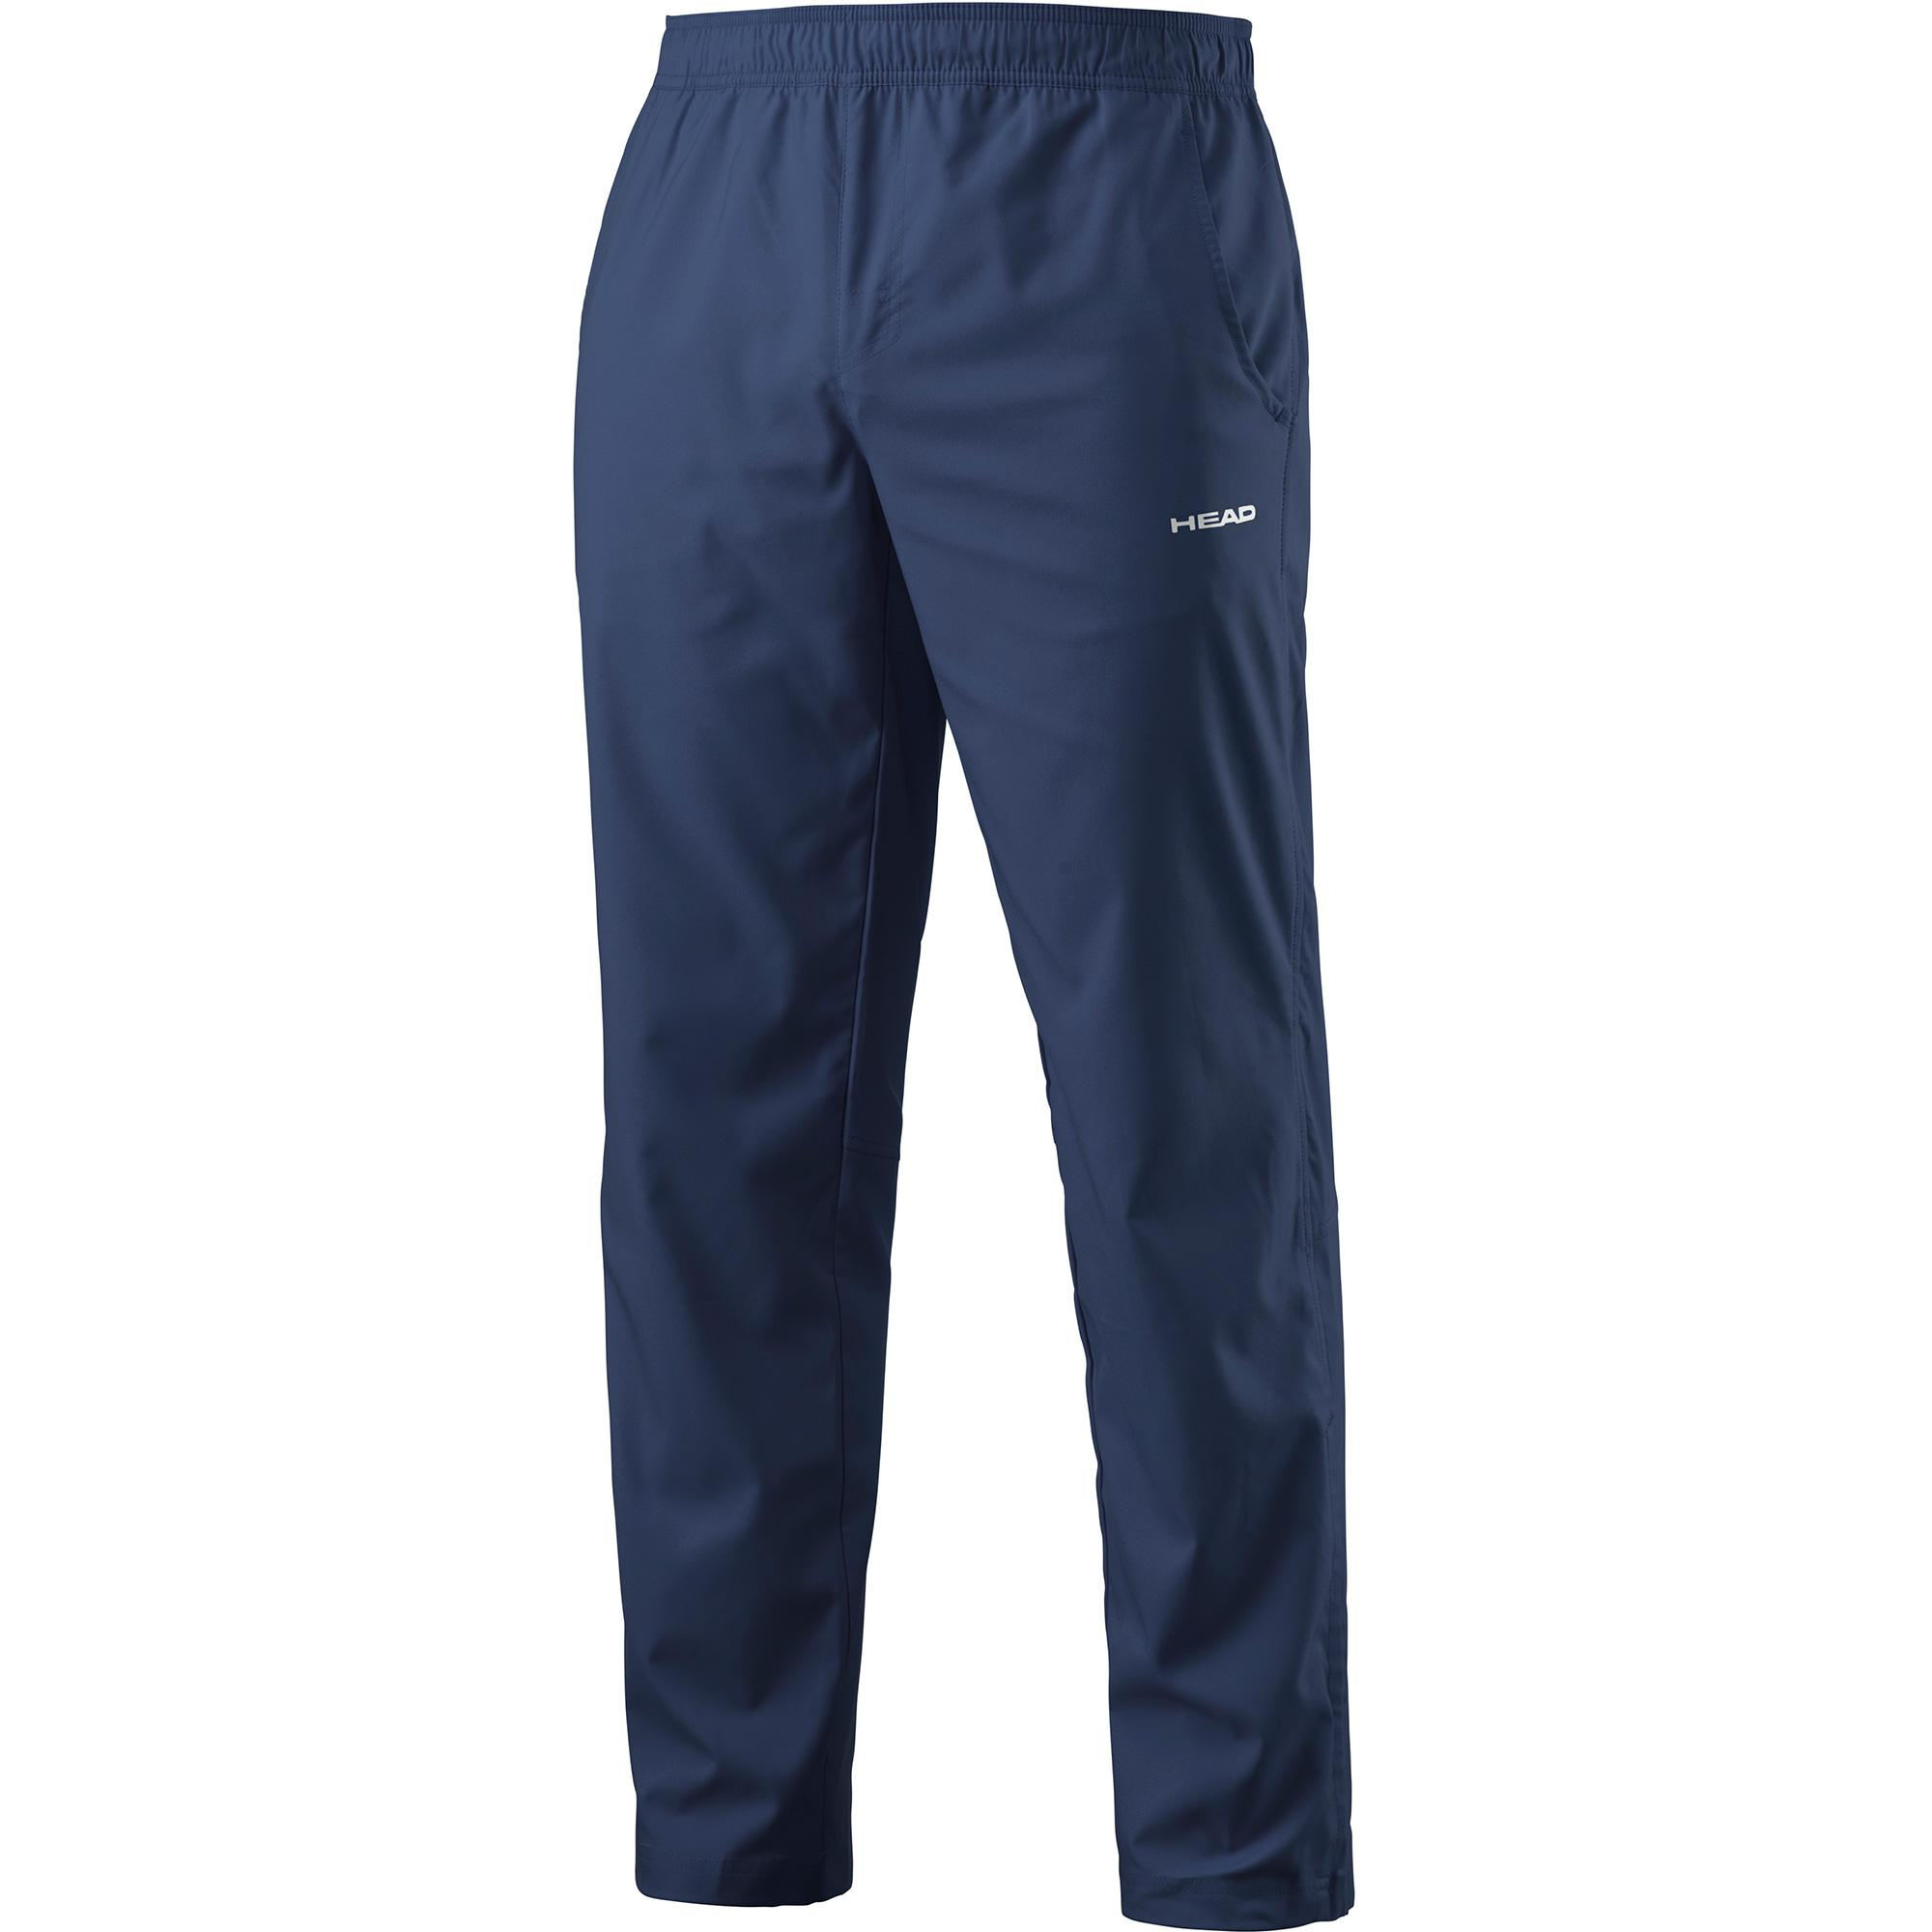 Head Club Pantalone Navy Uomo 1